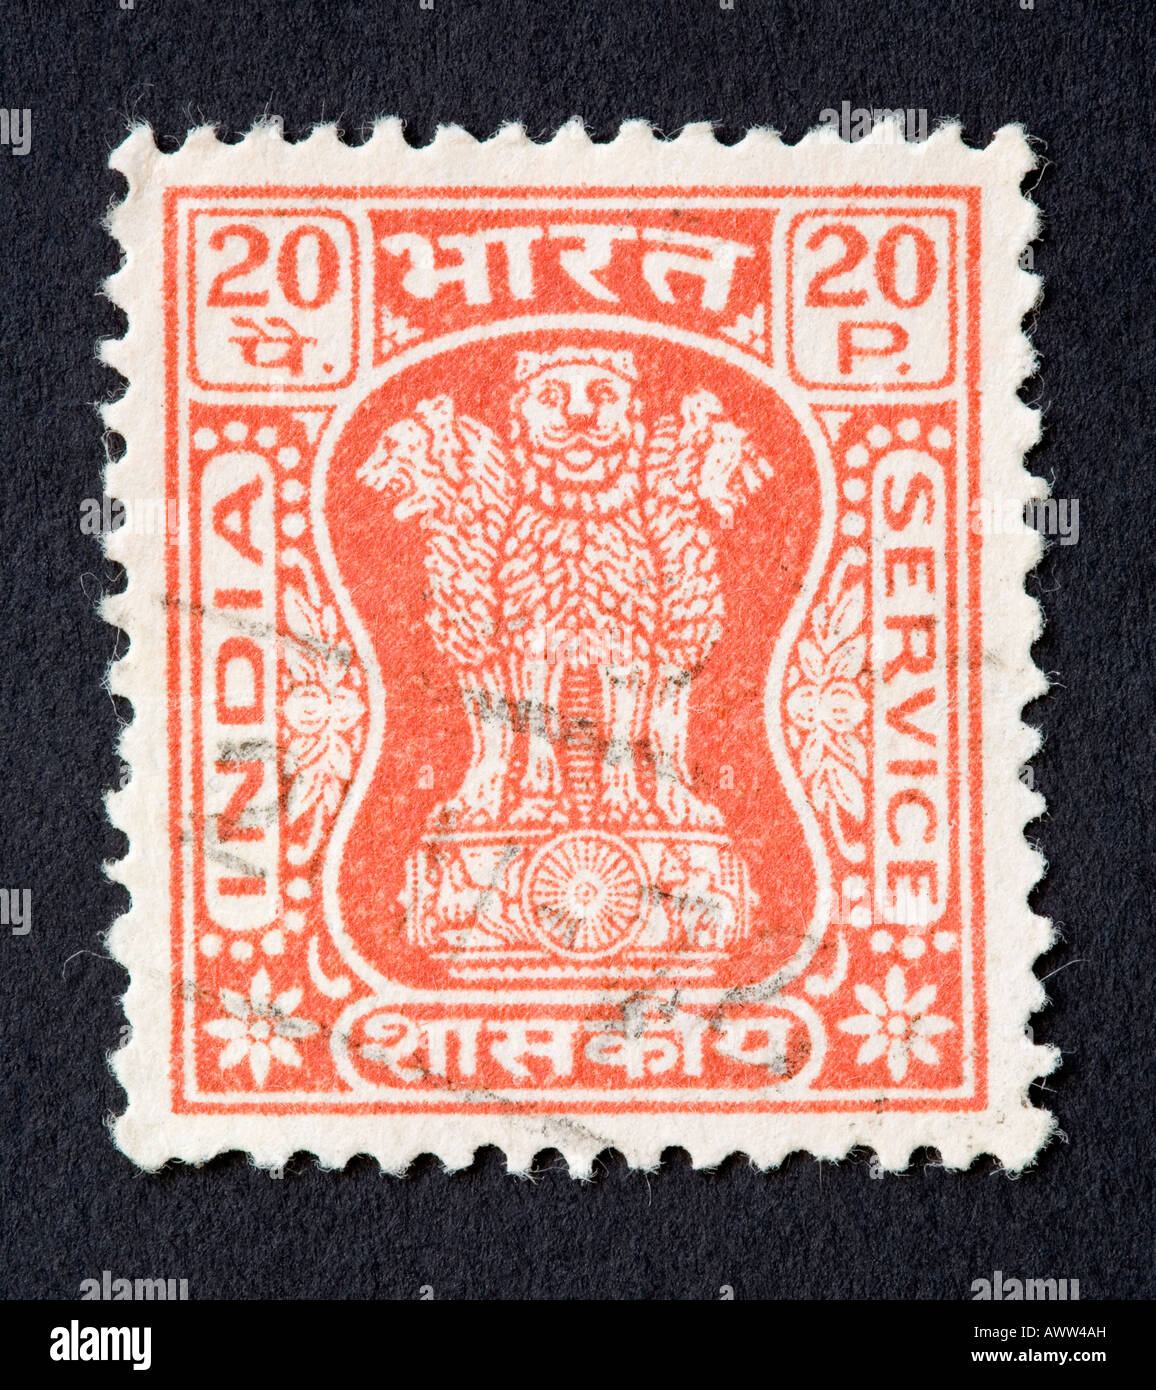 Images of india postage stamp